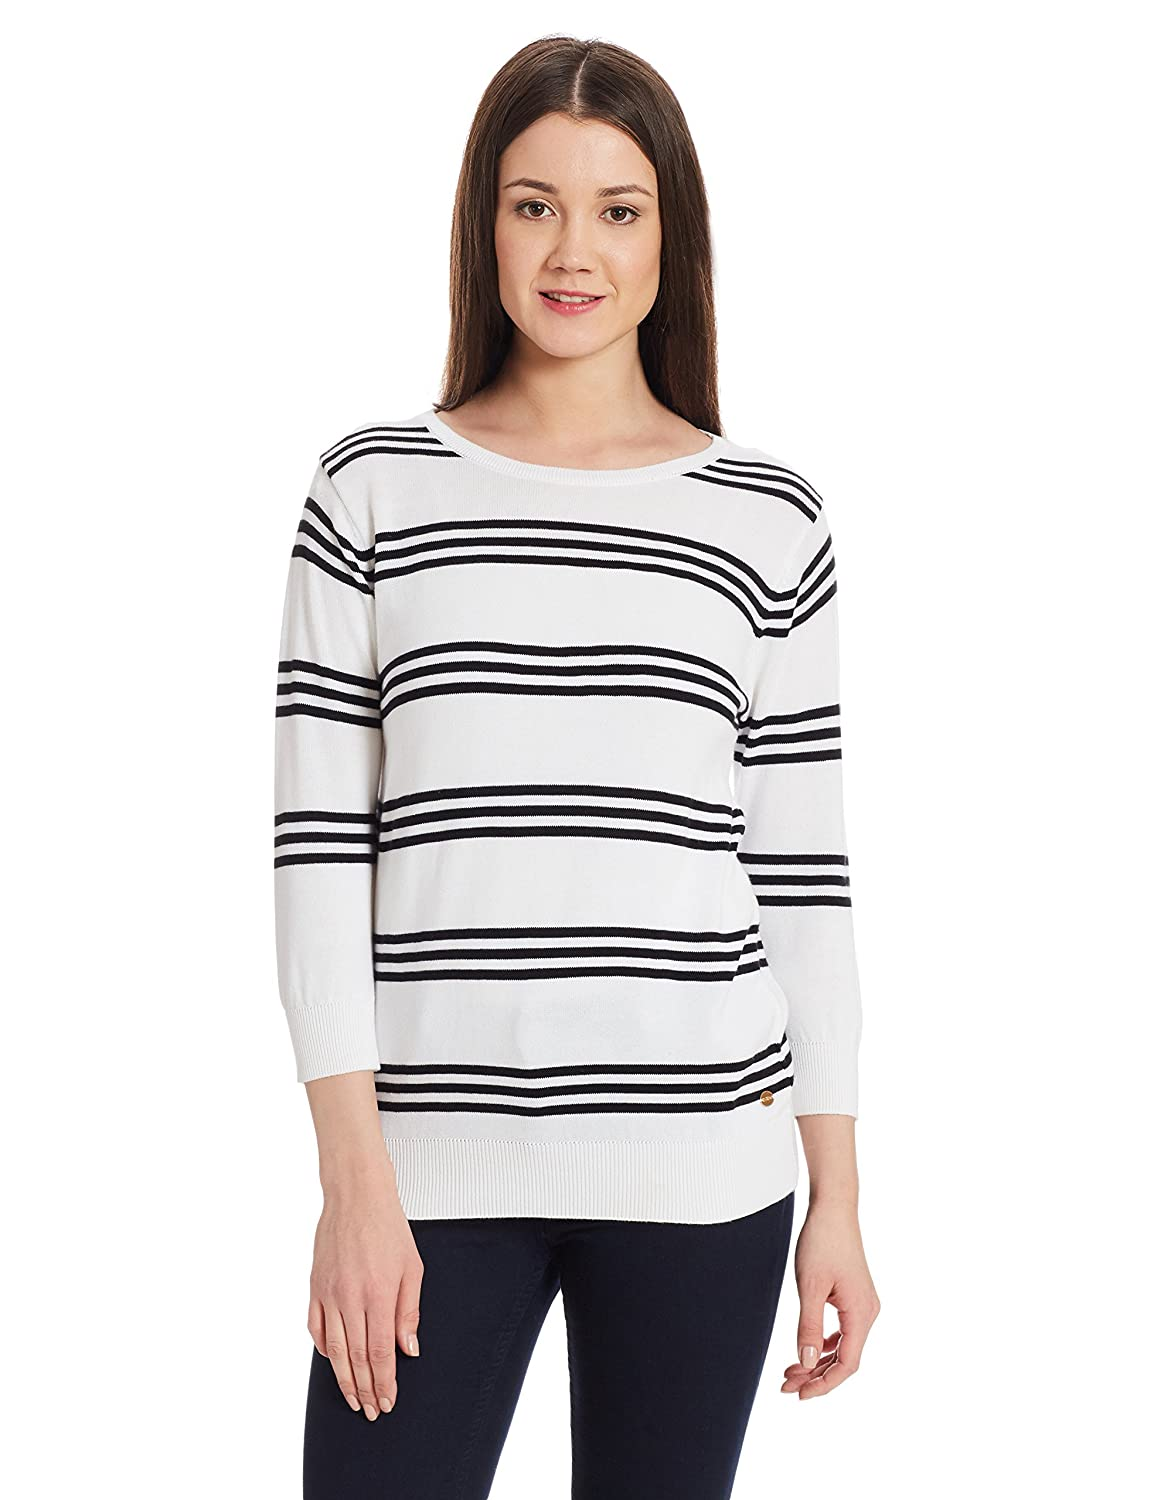 Brand in Focus!! Upto 50% Off U.S.Polo Assn Products By Amazon | US Polo Association Women's Cotton Sweatshirt @ Rs.949